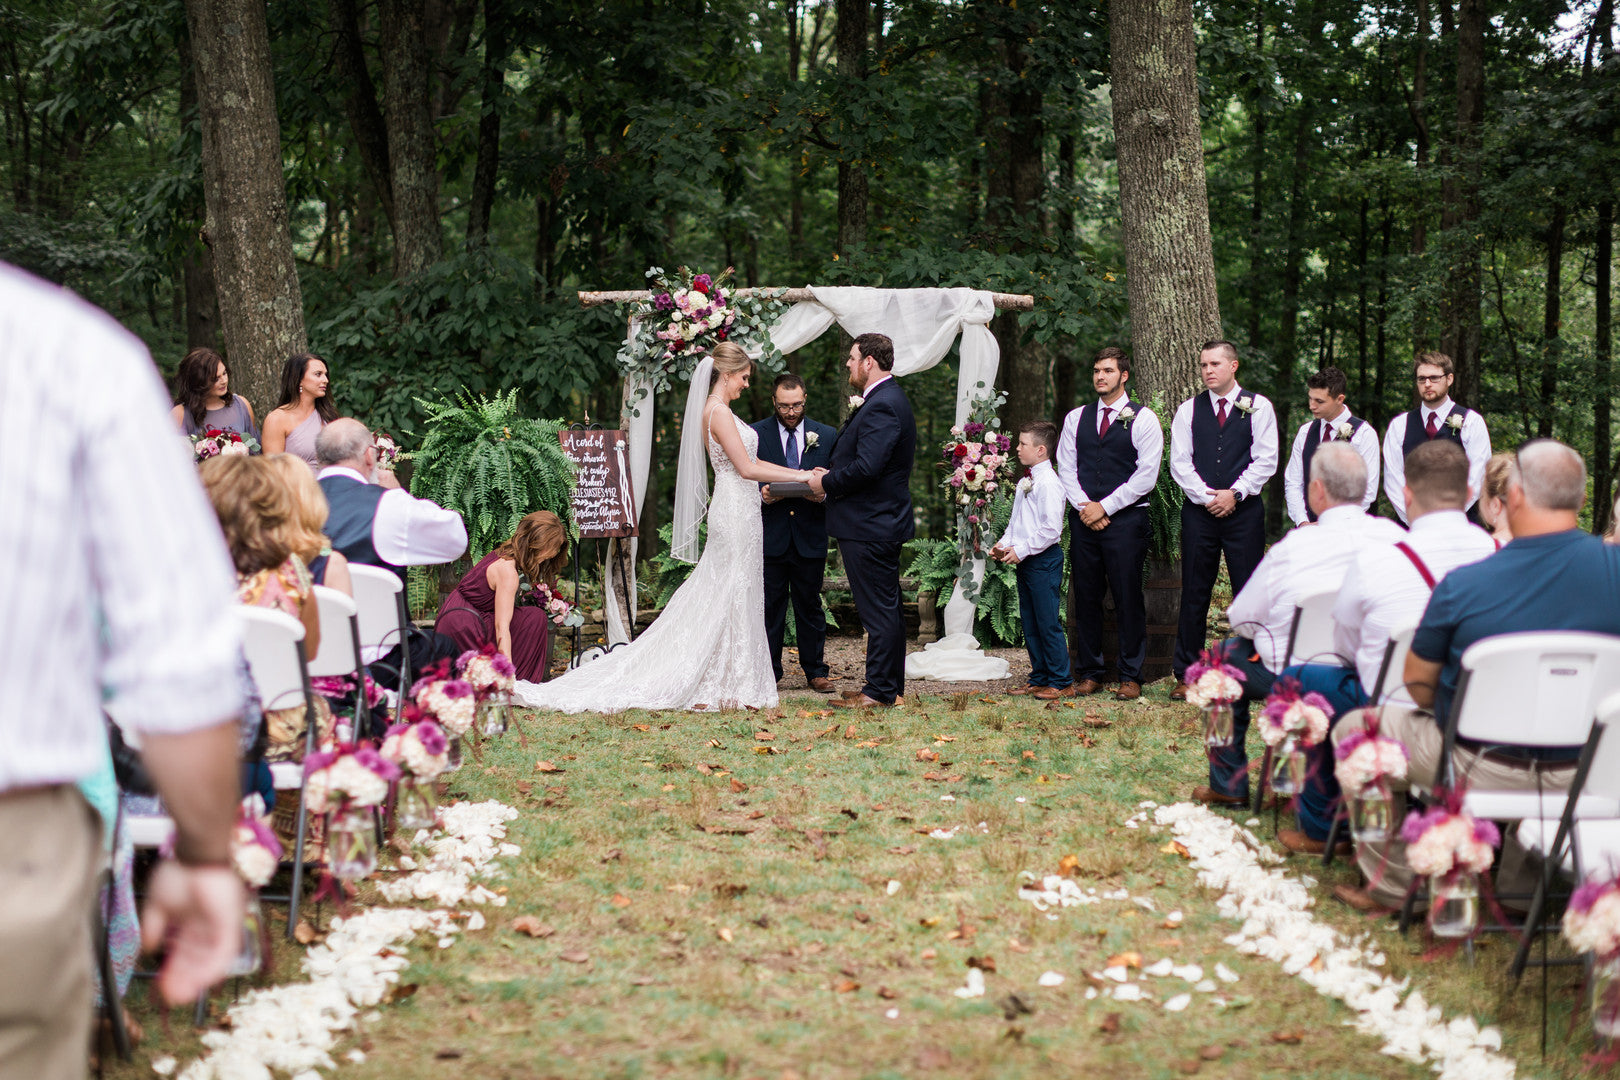 Bride and Groom at Alter | Elegant Outdoor Fall Wedding | Kate Aspen